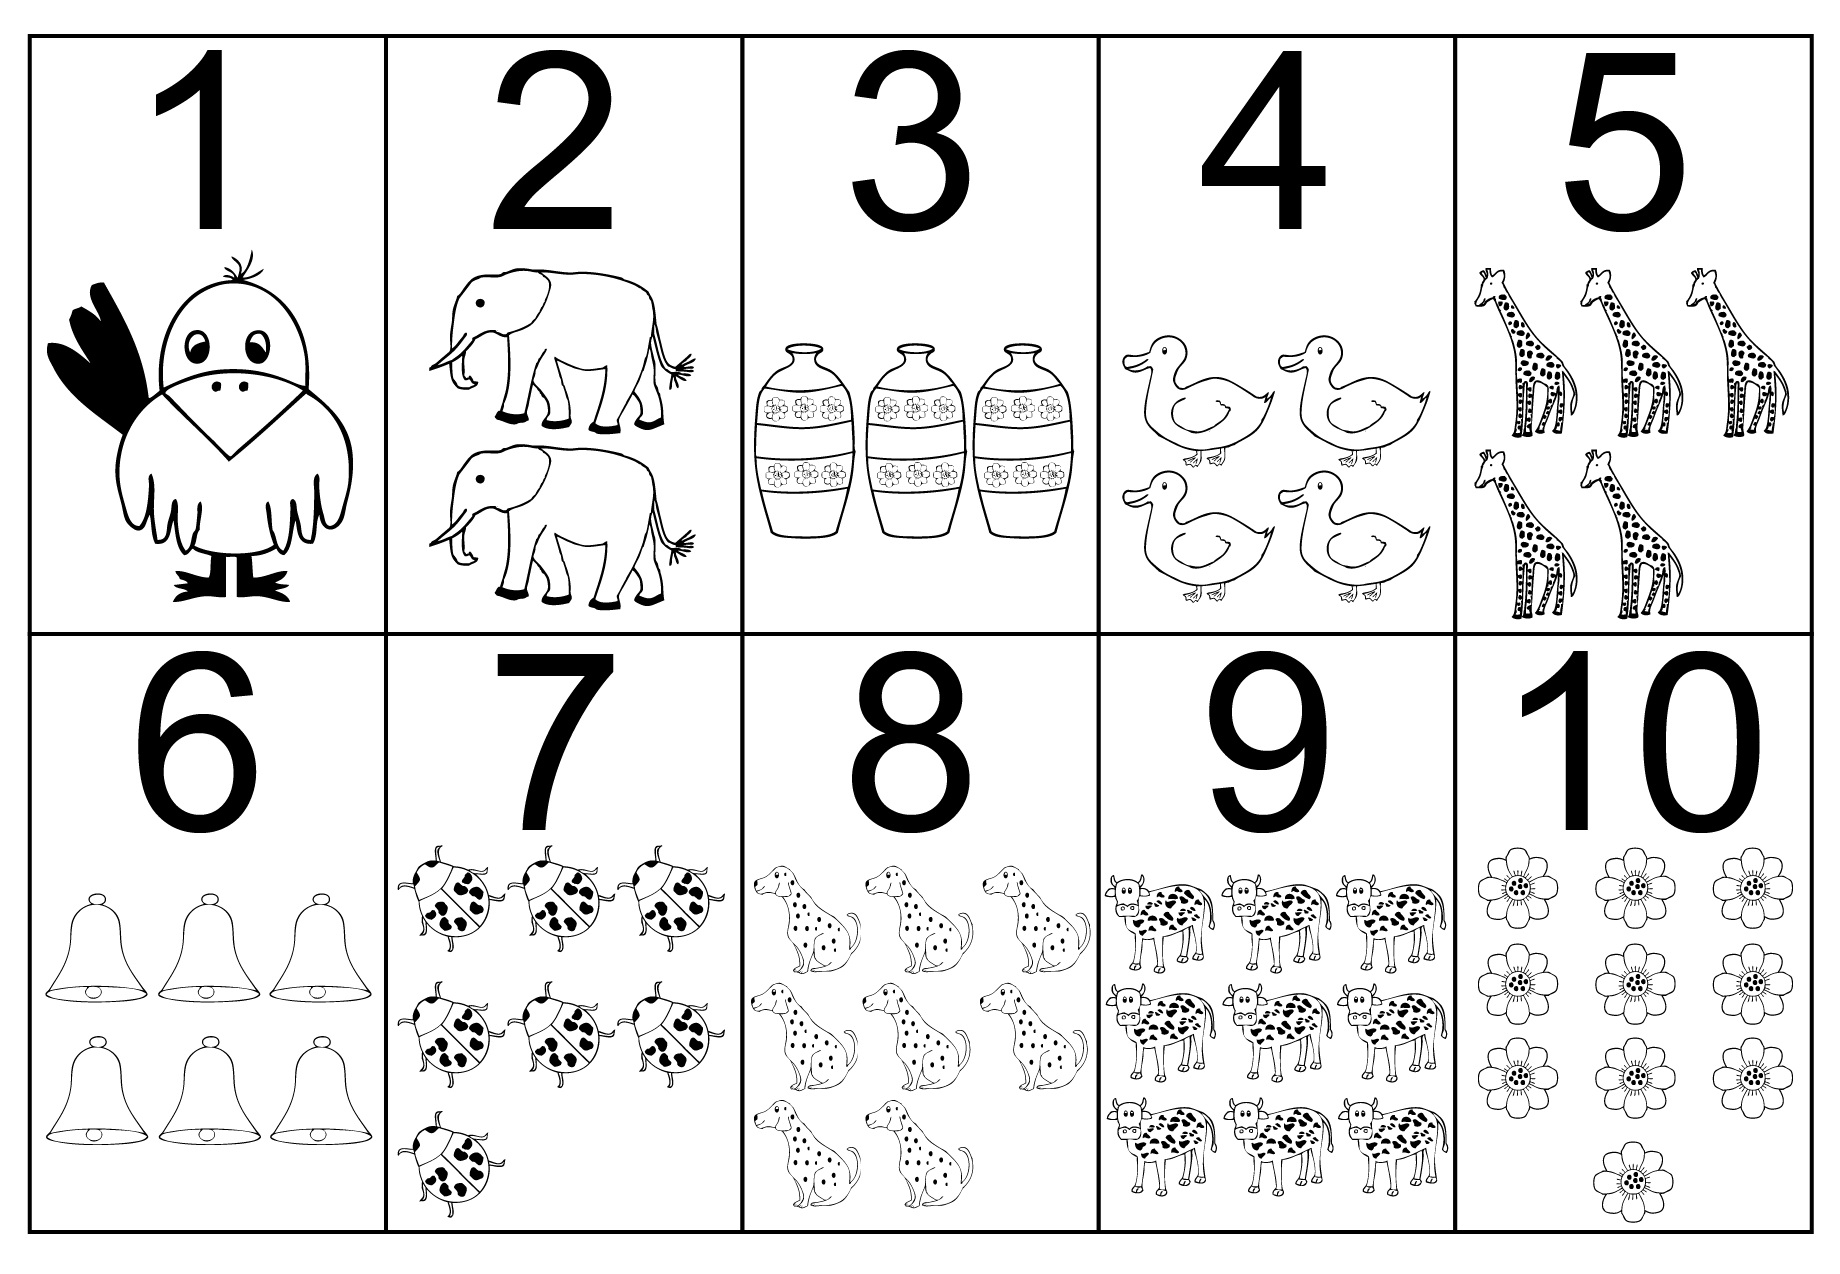 Printable Coloring Numbers : Free printable number coloring pages for kids